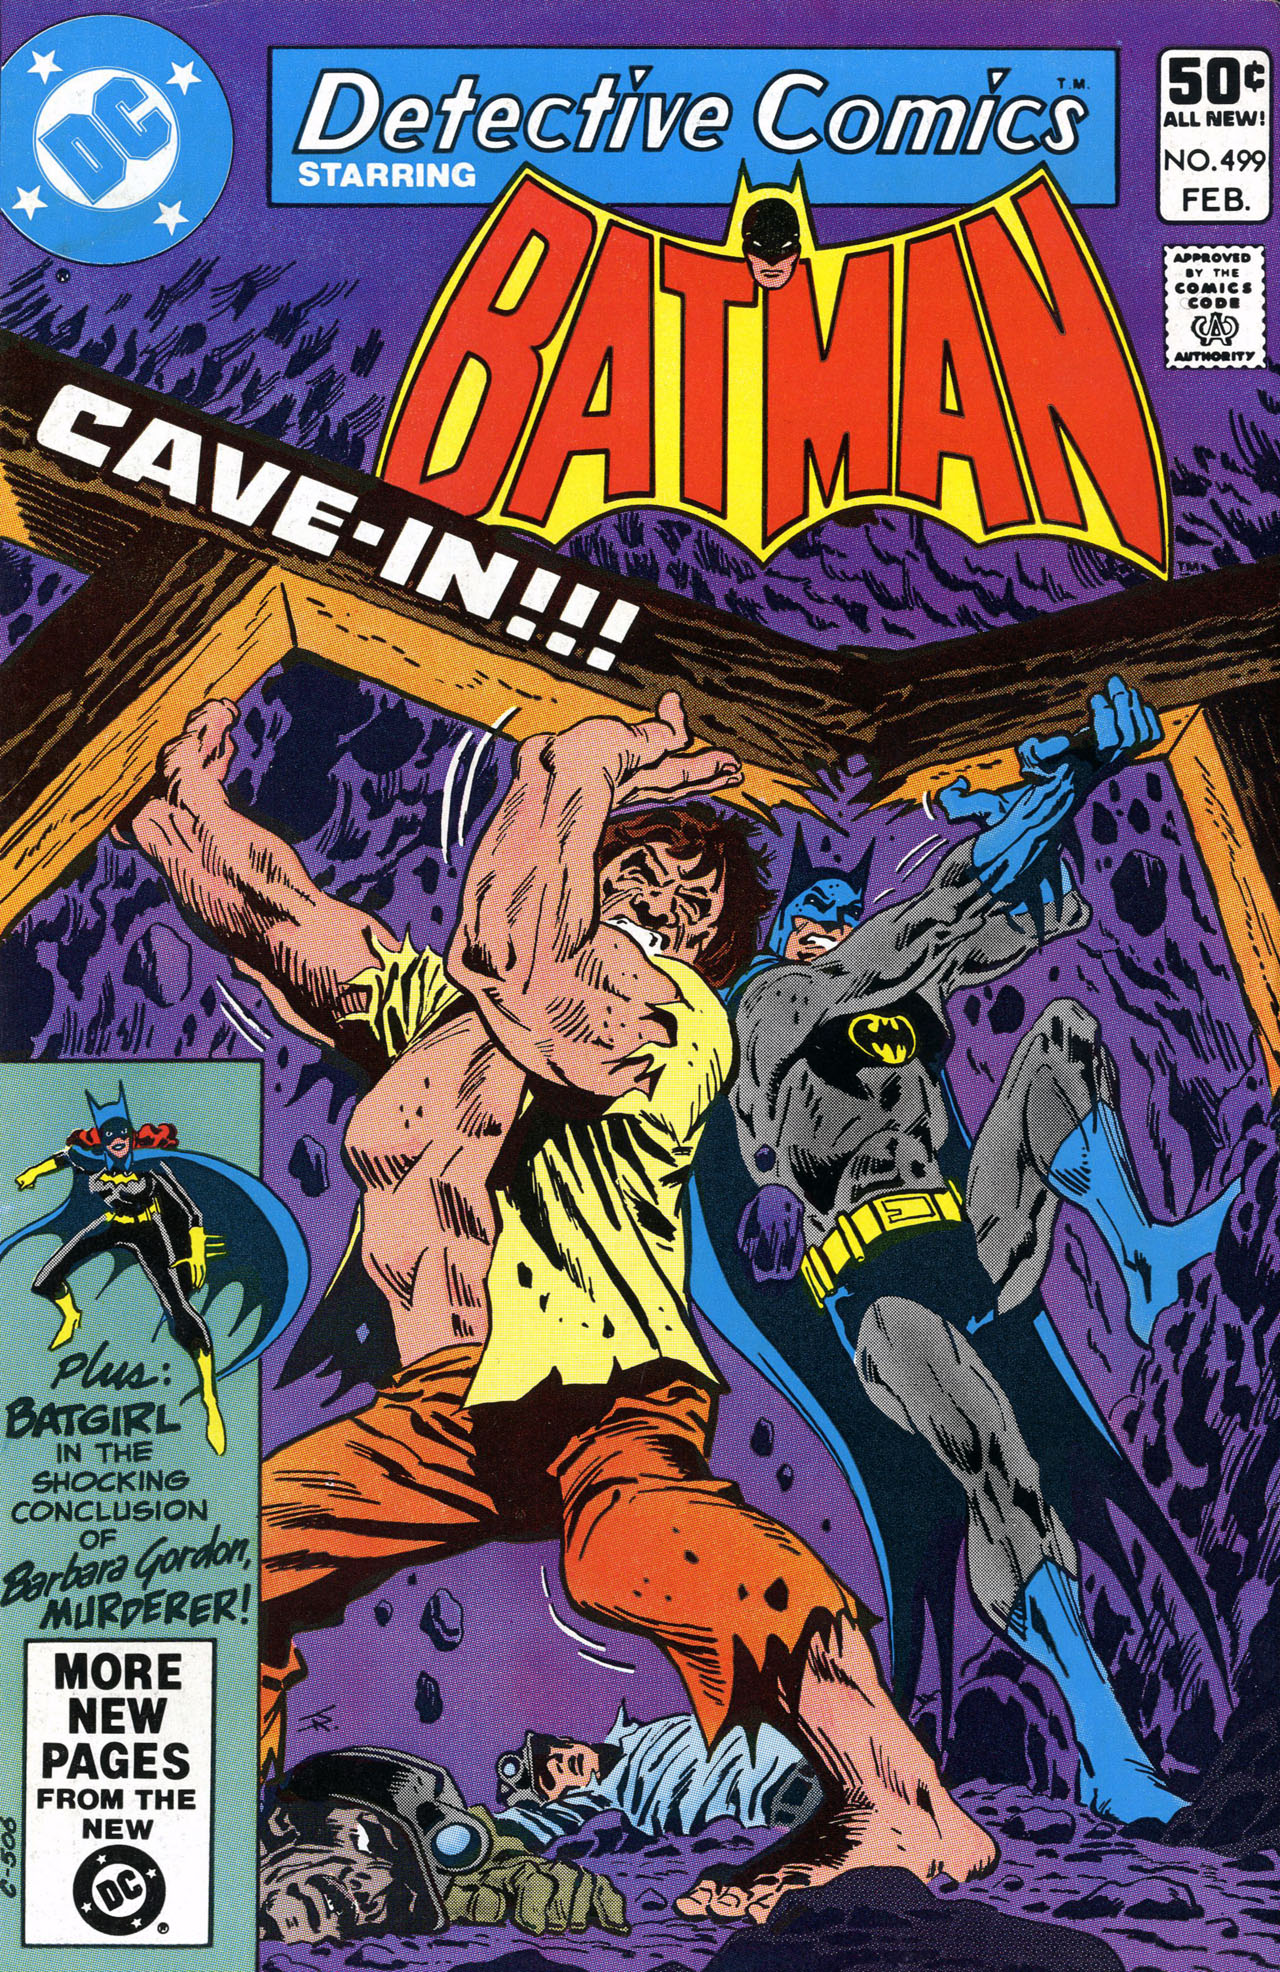 Detective Comics (1937) Issue #499 Page 1